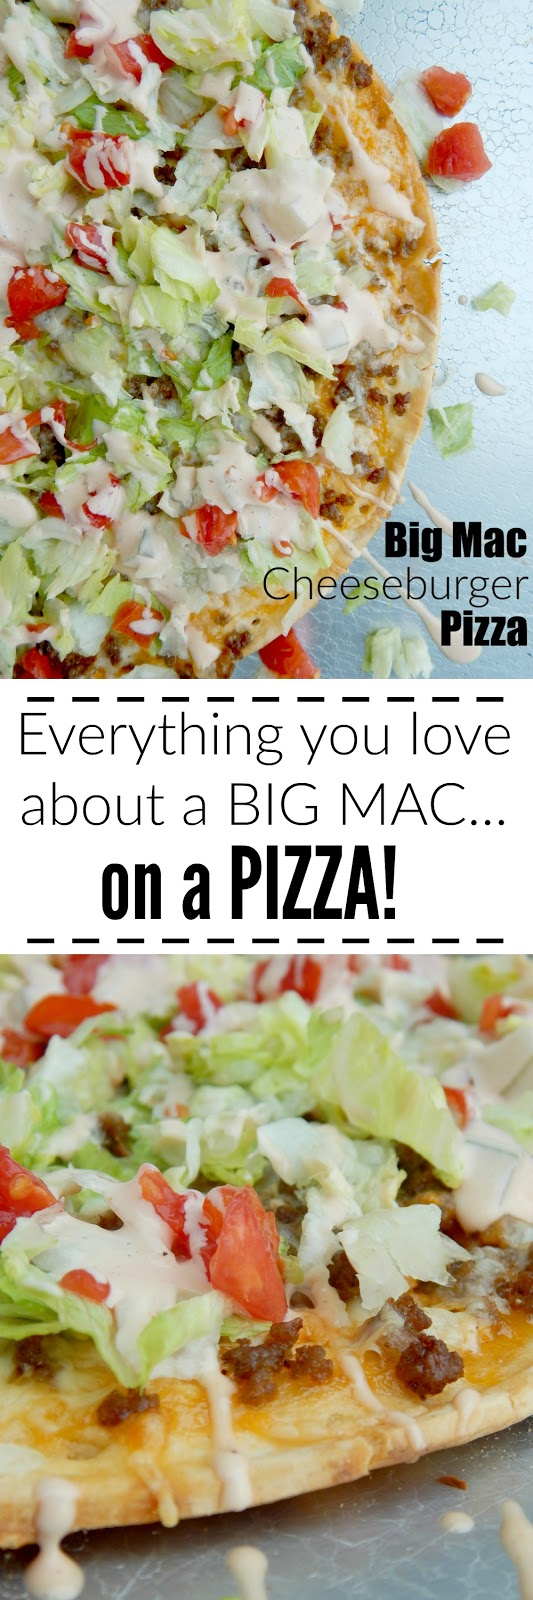 big mac cheeseburger pizza (sweetandsavoryfood.com)